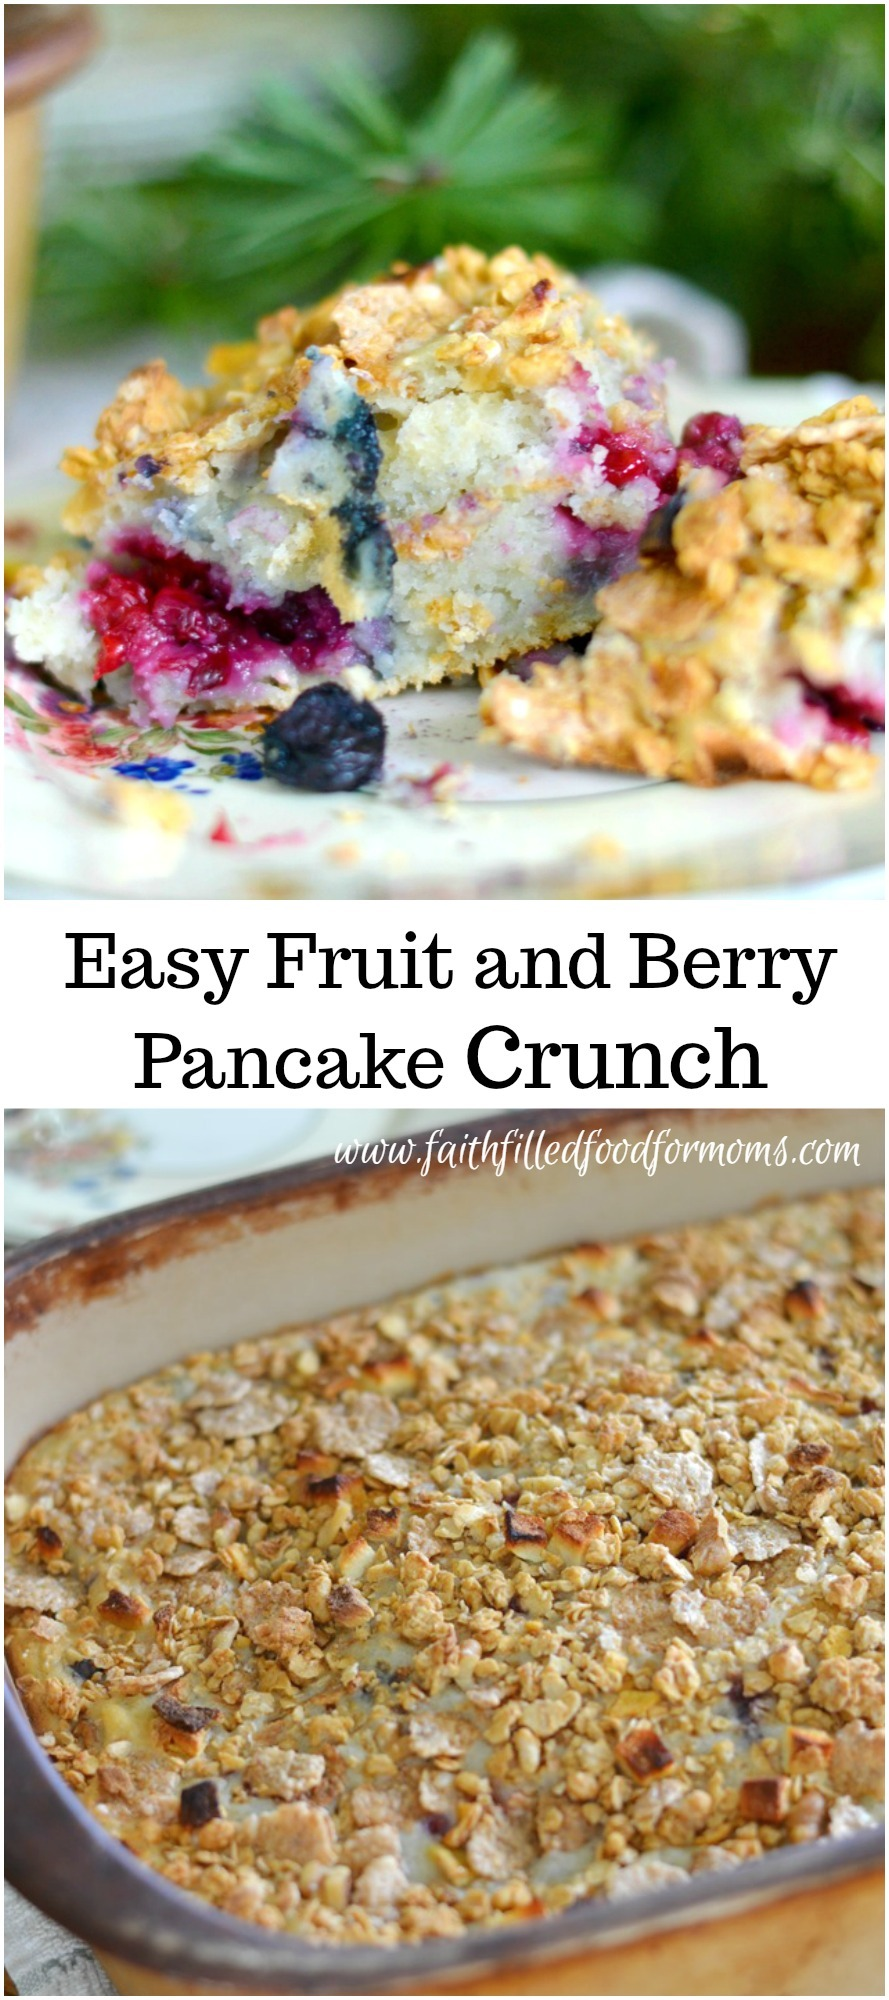 Easy Fruit and Berry Breakfast Pancake Crunch